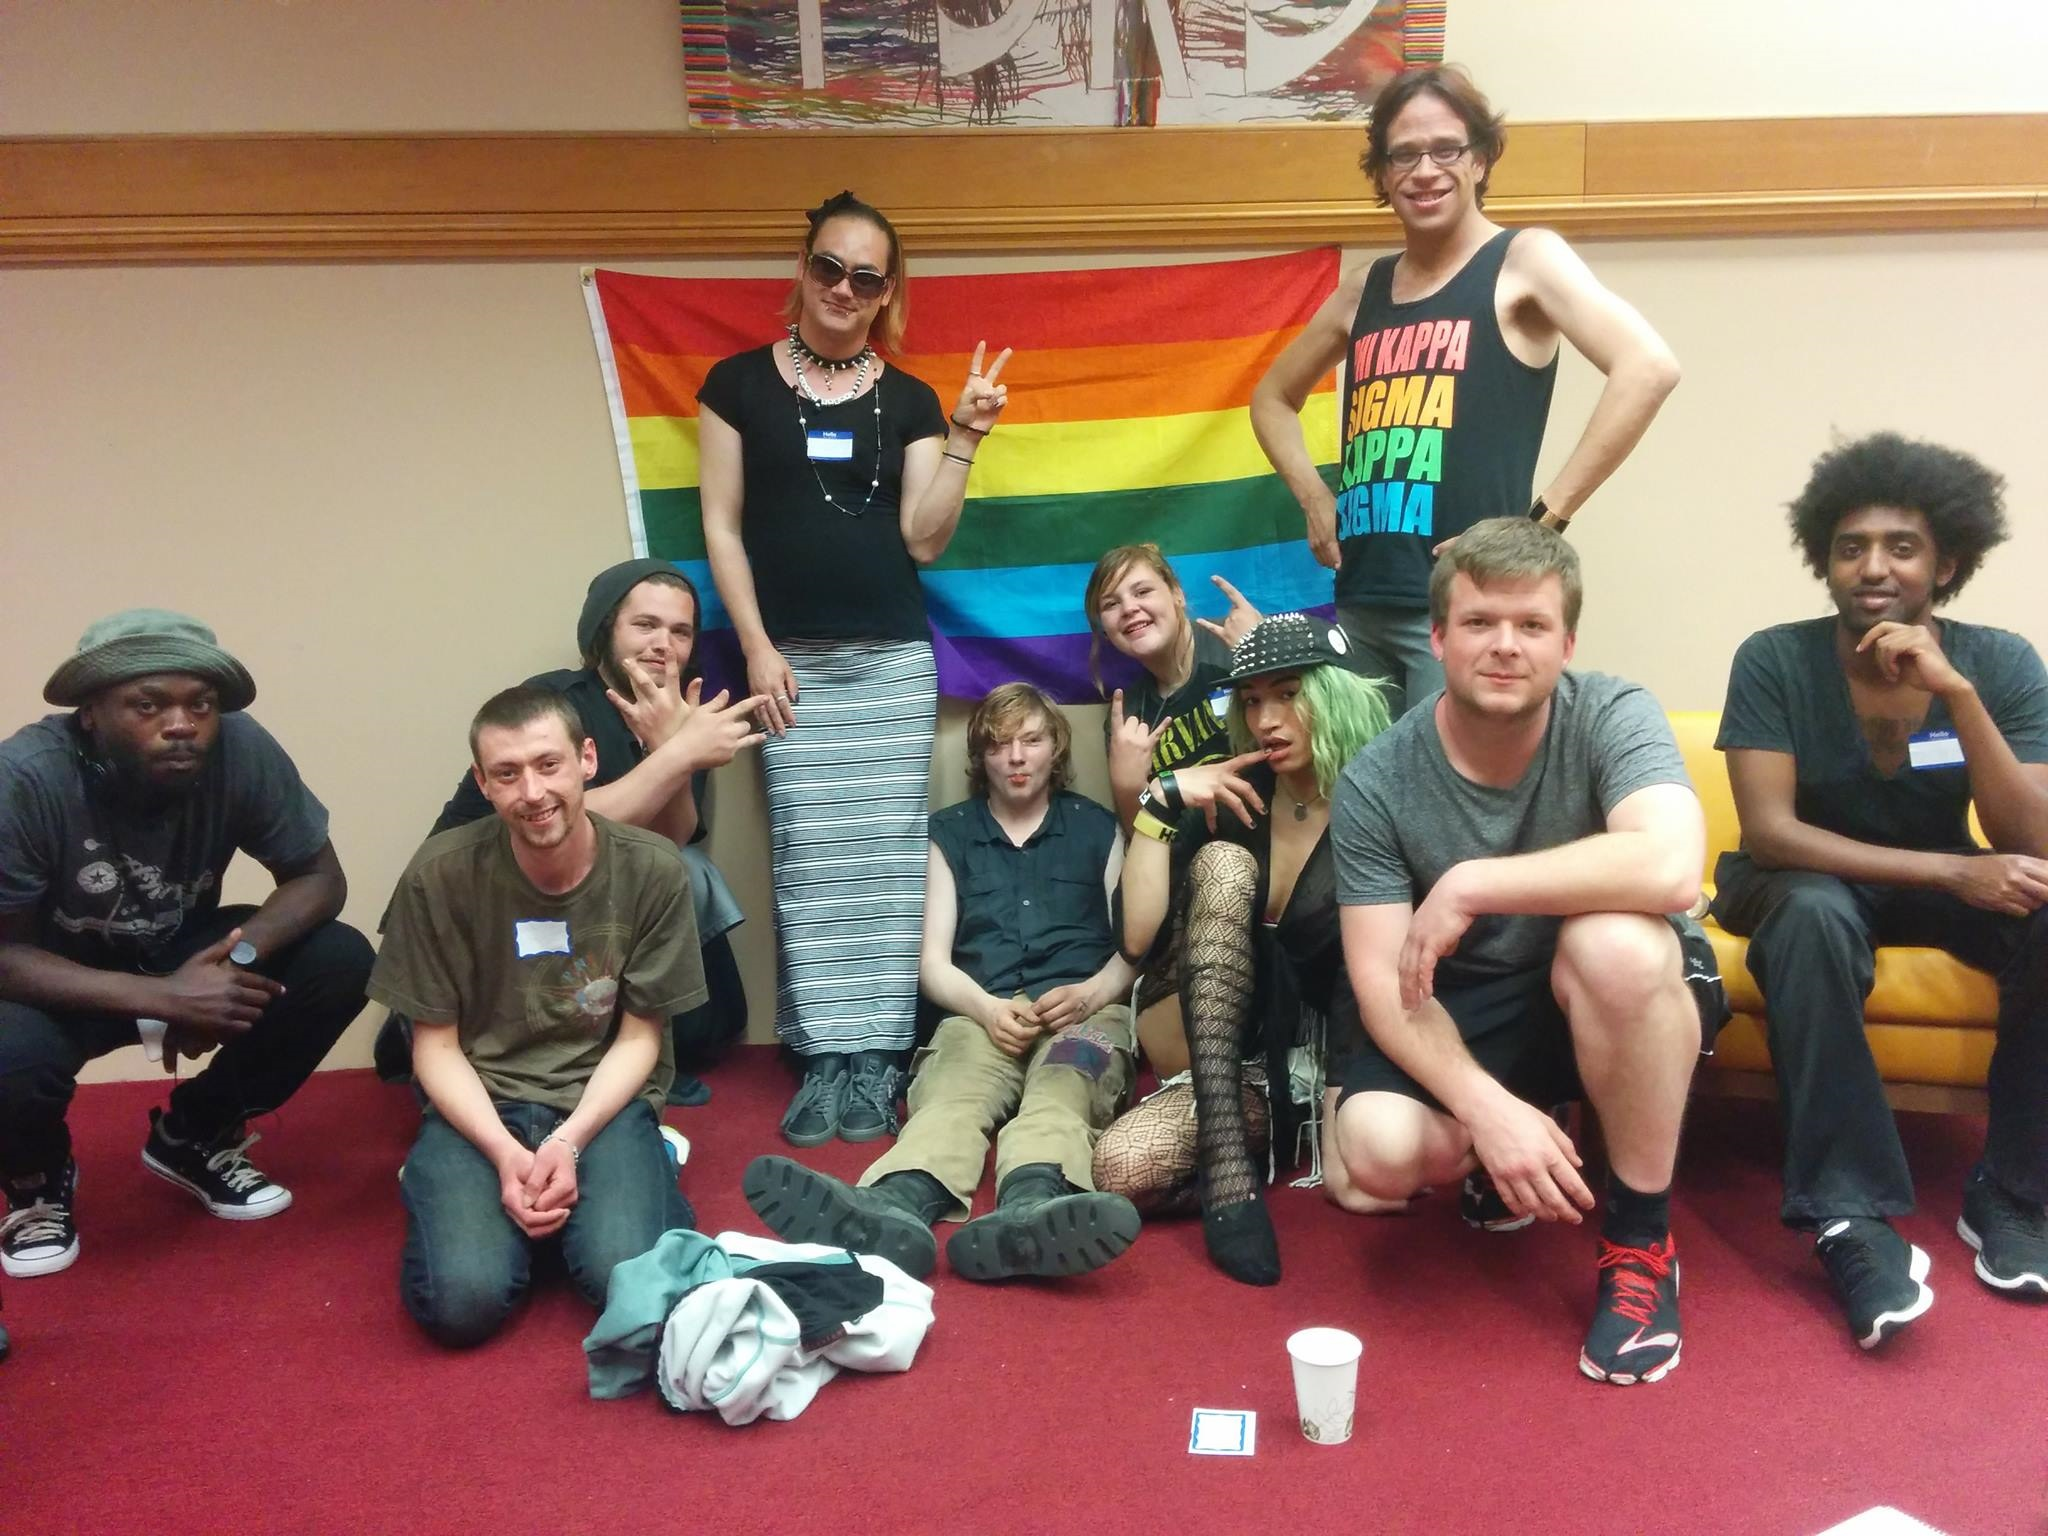 Worq It Out: An LGBTQ Support Group